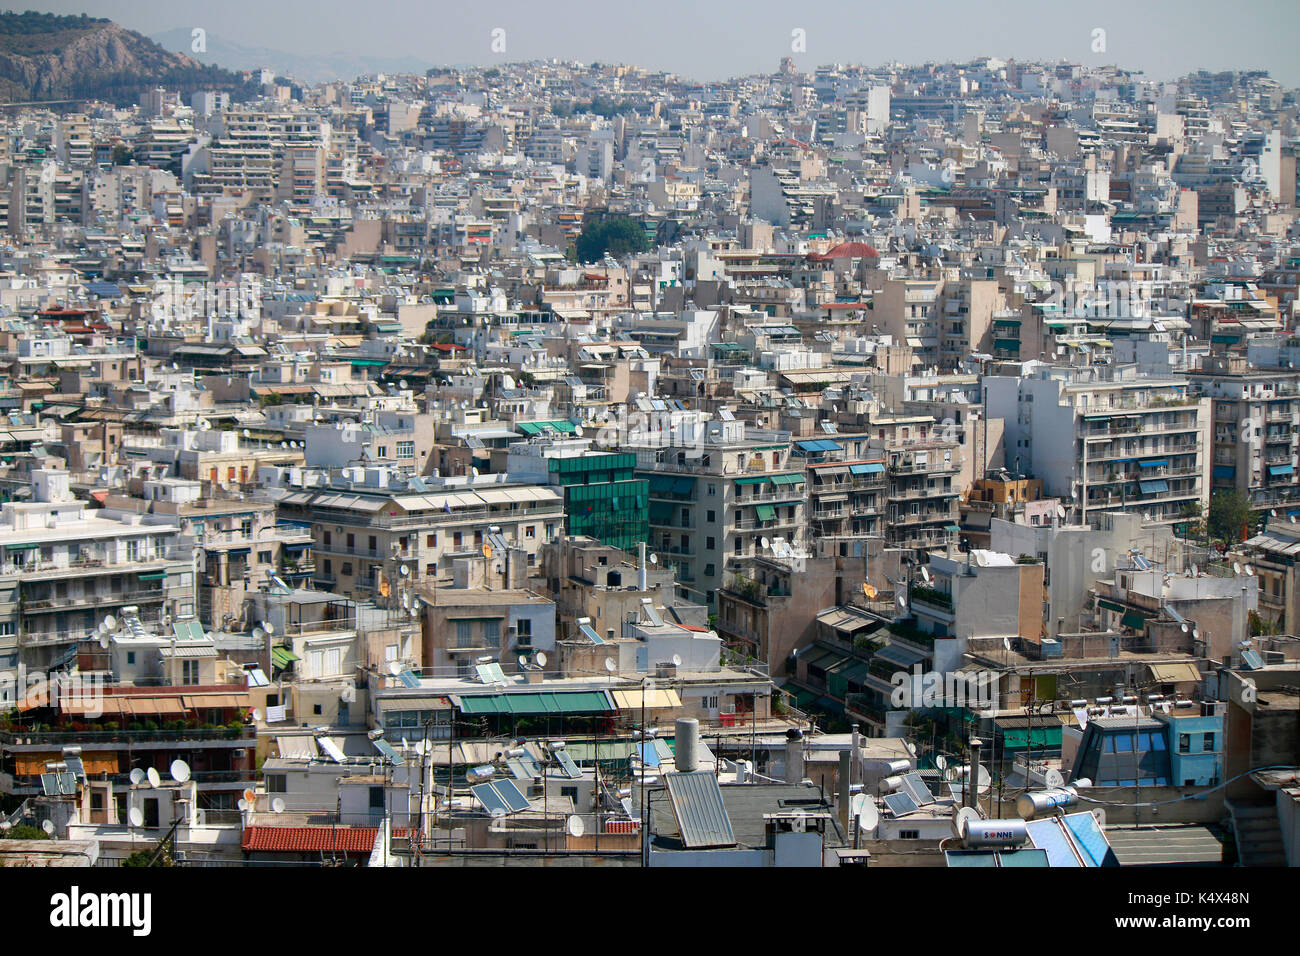 Skyline, Athen, Griechenland. Stock Photo